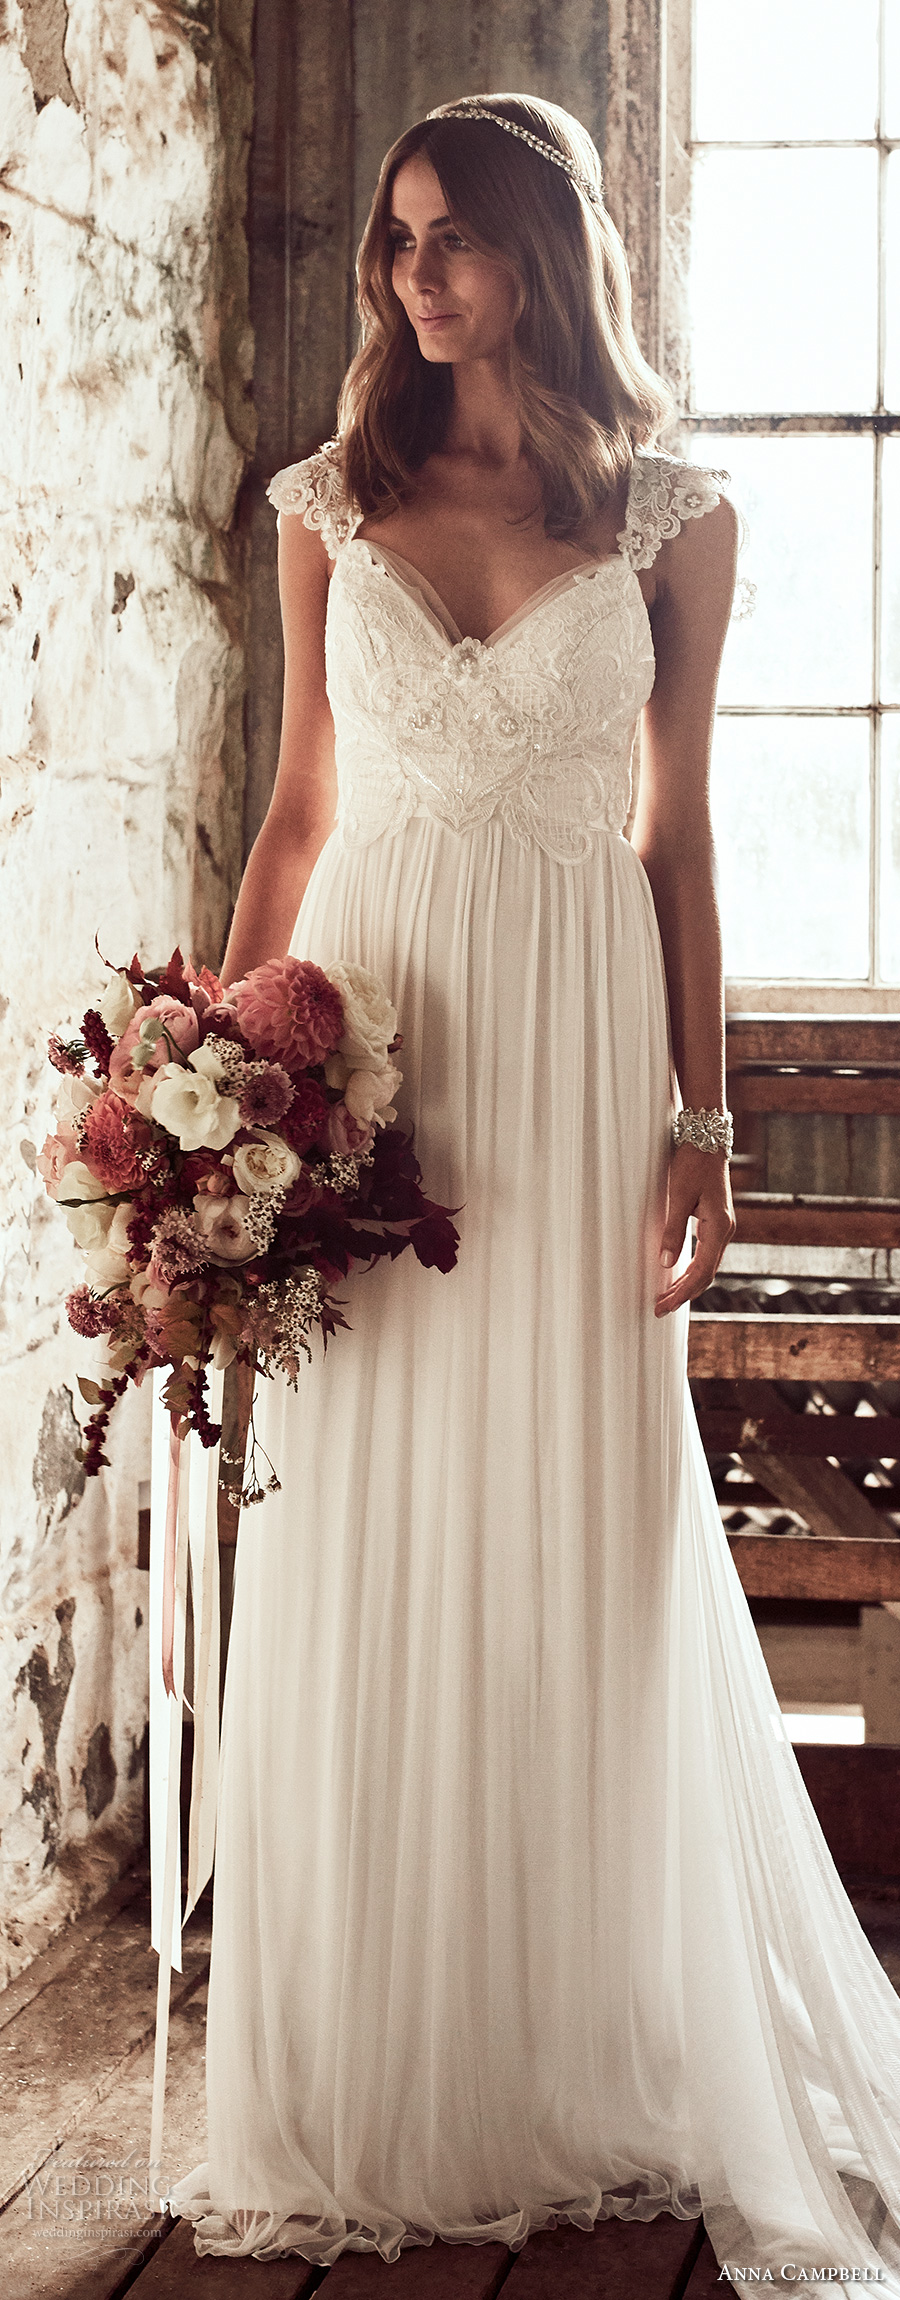 anna campbell 2018 bridal cap sleeves sweetheart neckline heavily embellished bodice romantic soft a line wedding dress open v back sweep train (3) lv